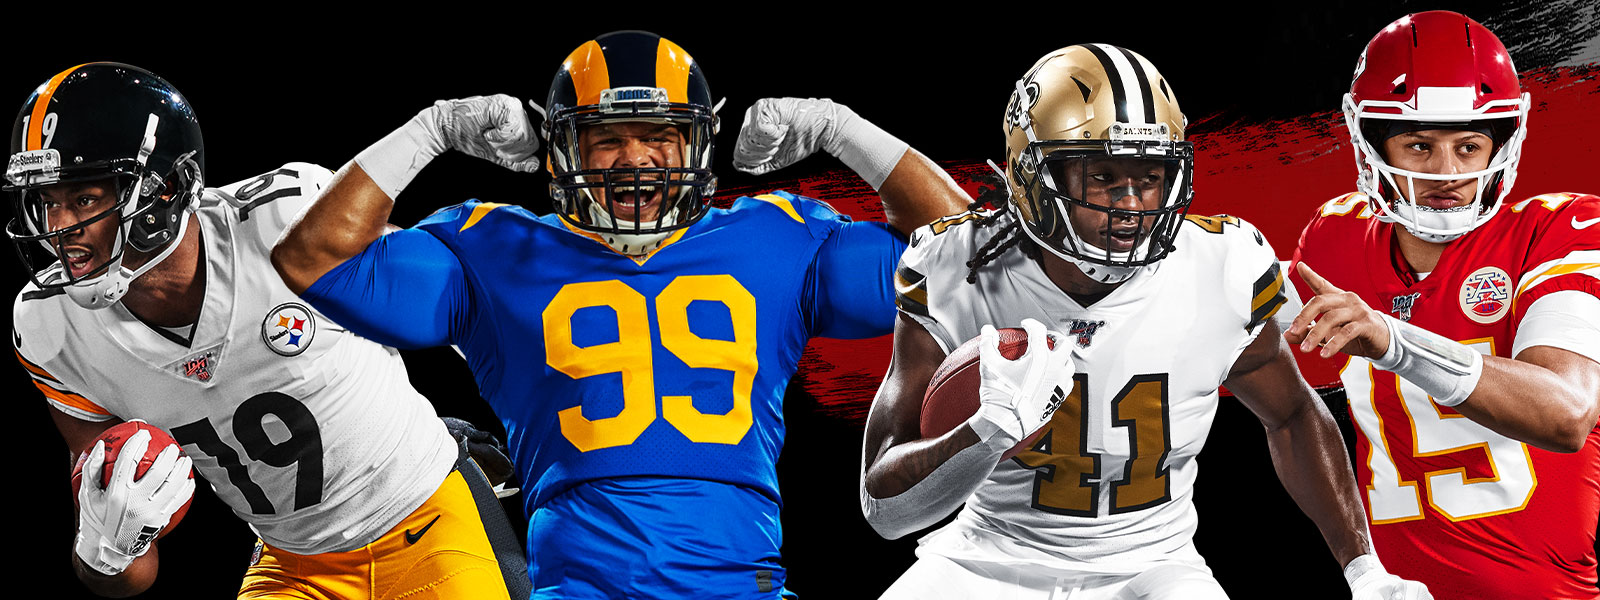 Four American football players in full gear in different poses with black and grey paint strokes on a black background